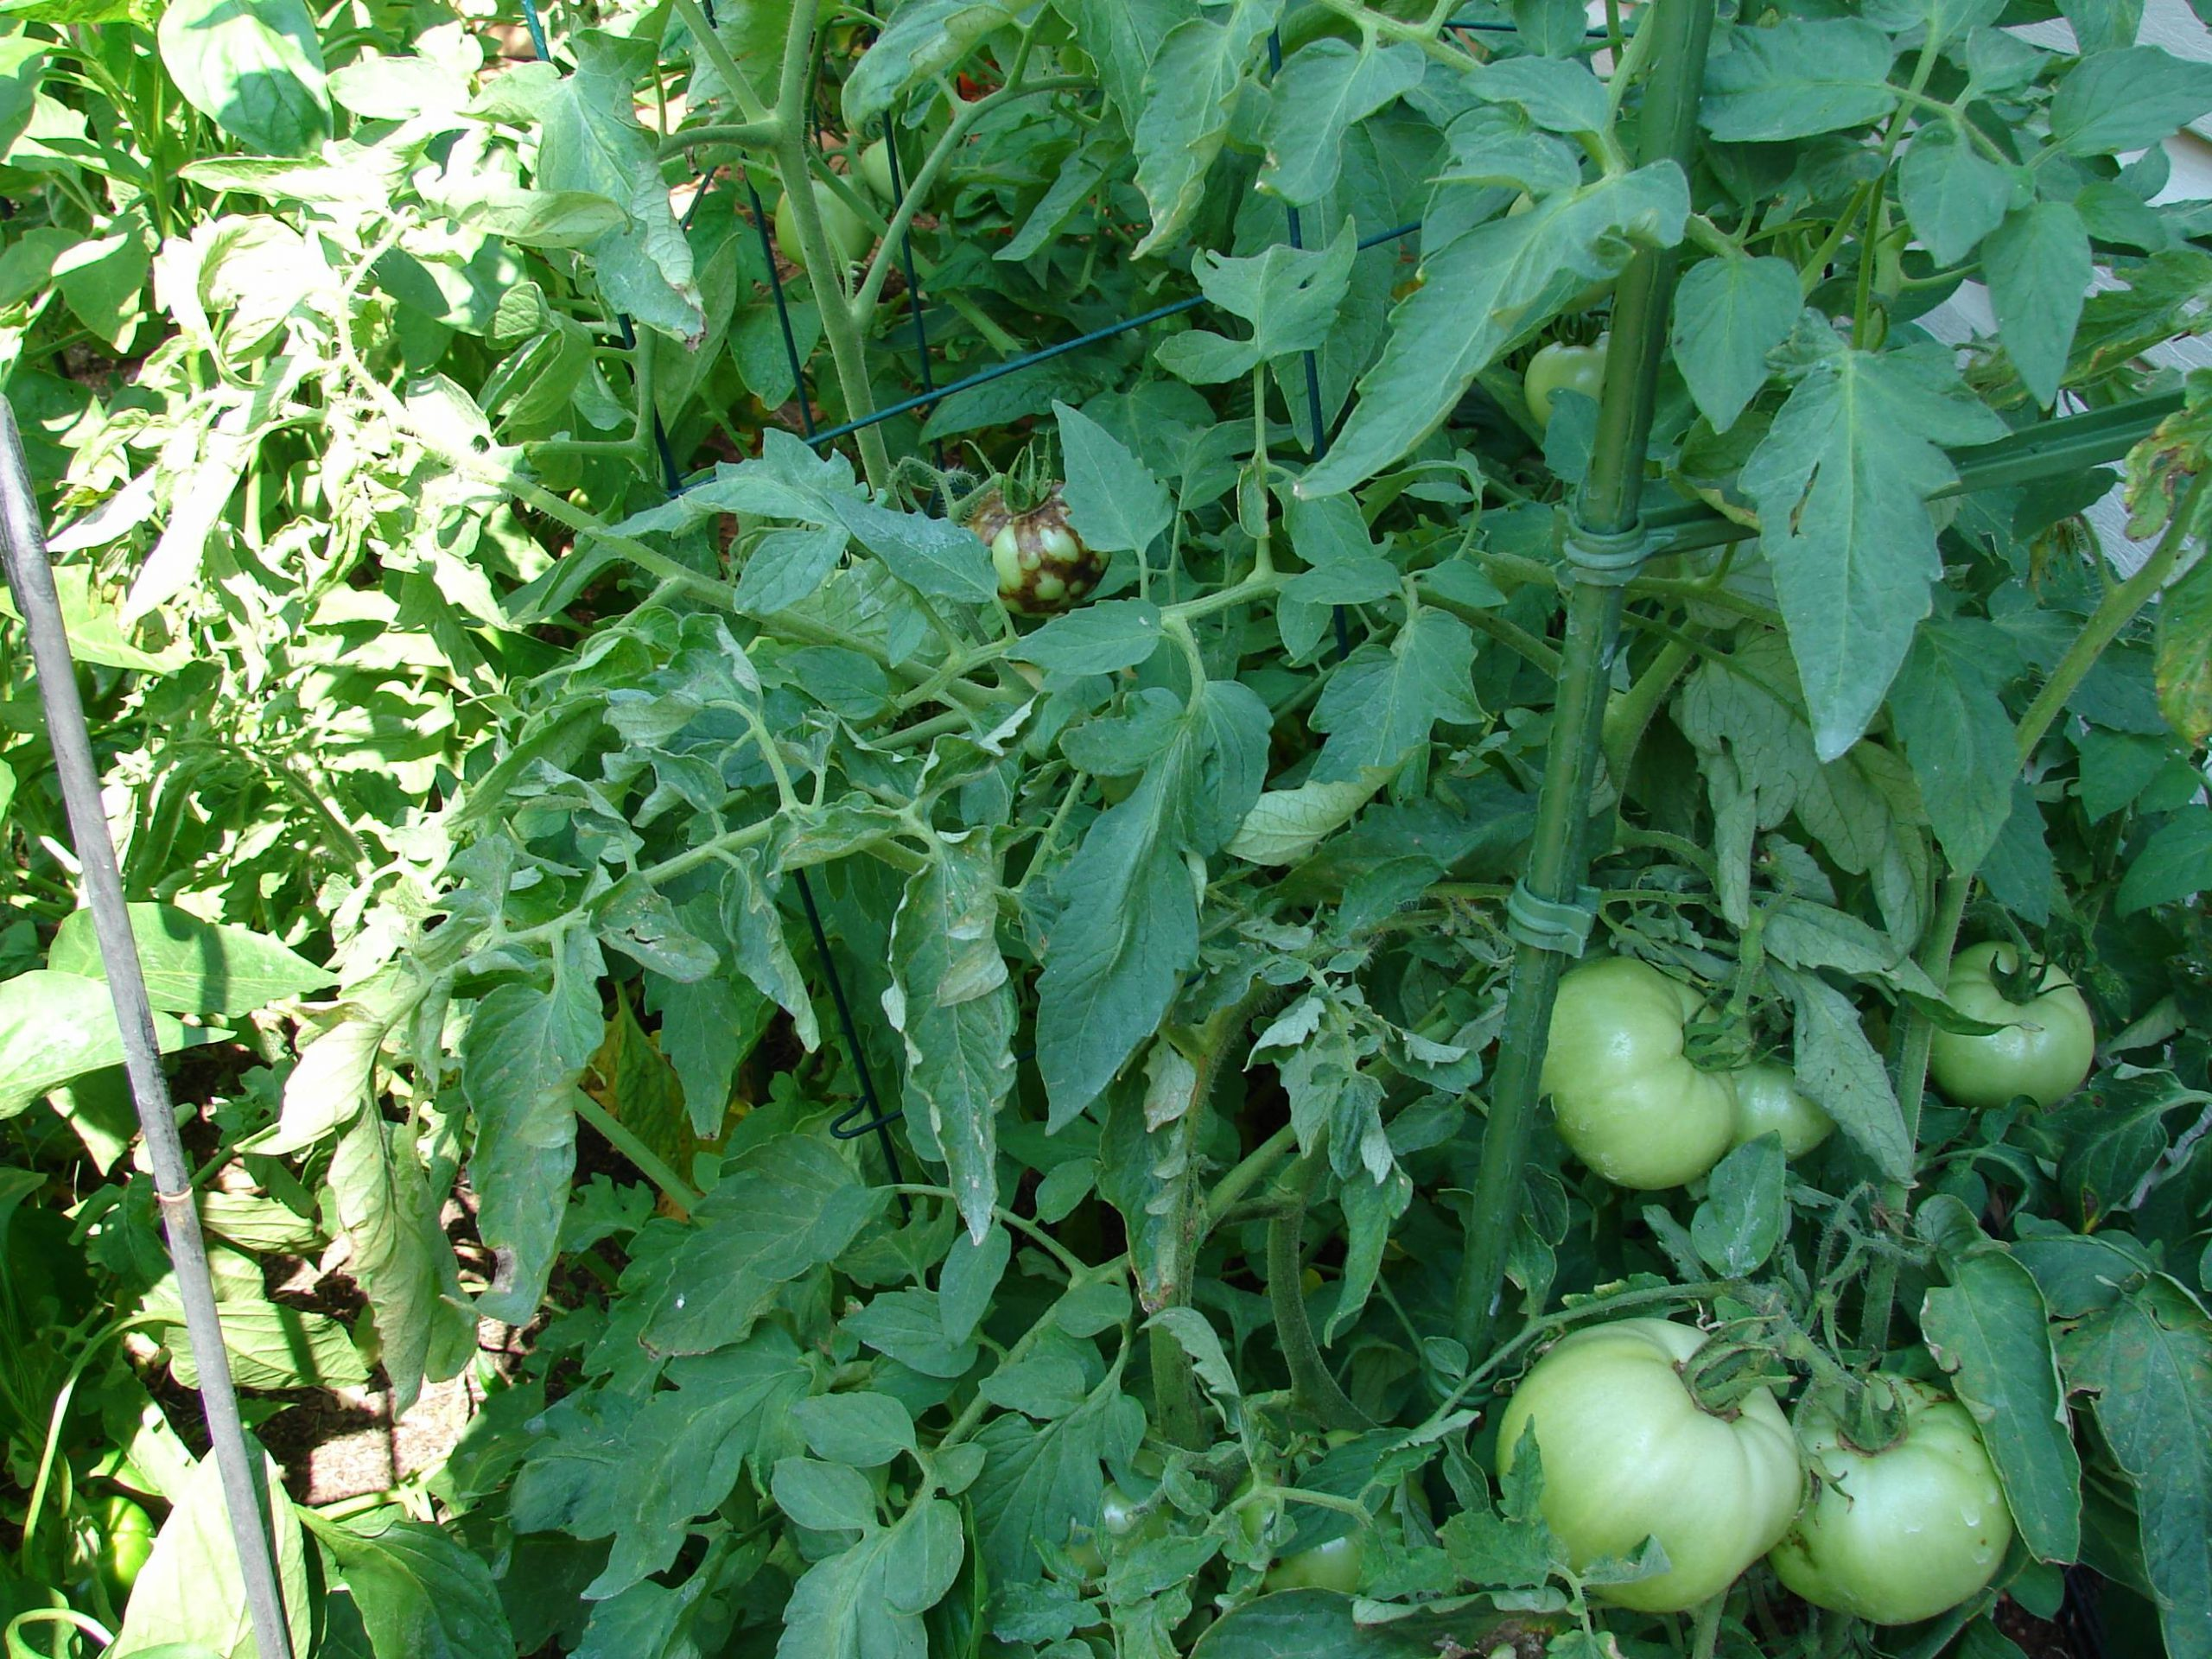 tomato spotted wilt virus 4 don't know source